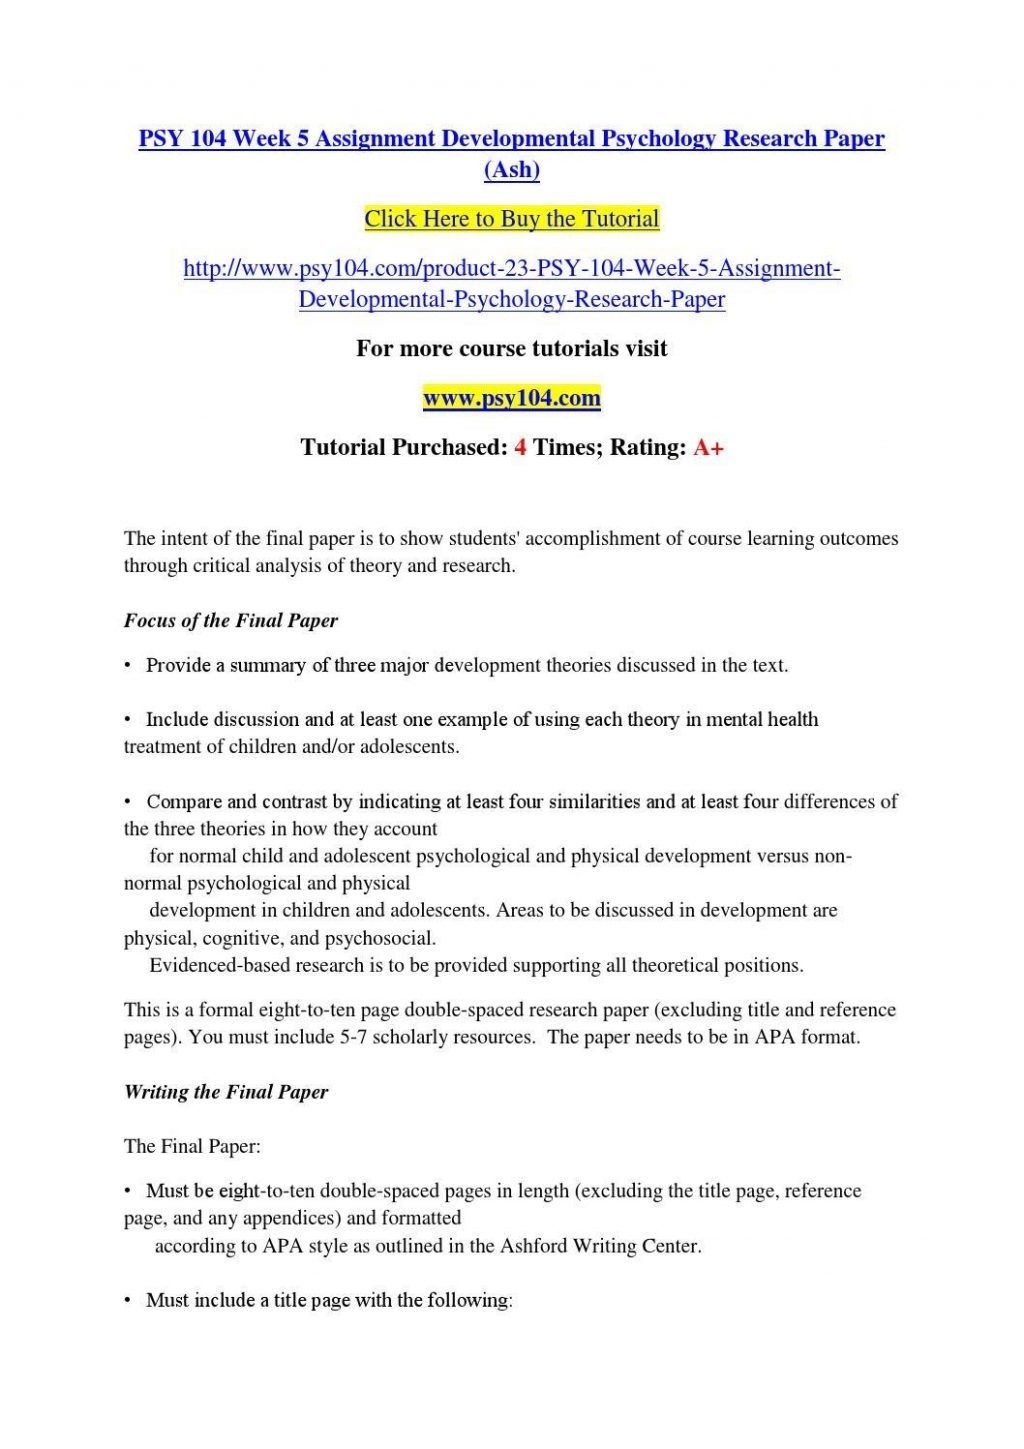 003 Developmental Psychology Essay Ideas Structure Psychological20ent Paper Topics Pdf20 1024x1449 For Dreaded Research Potential Large